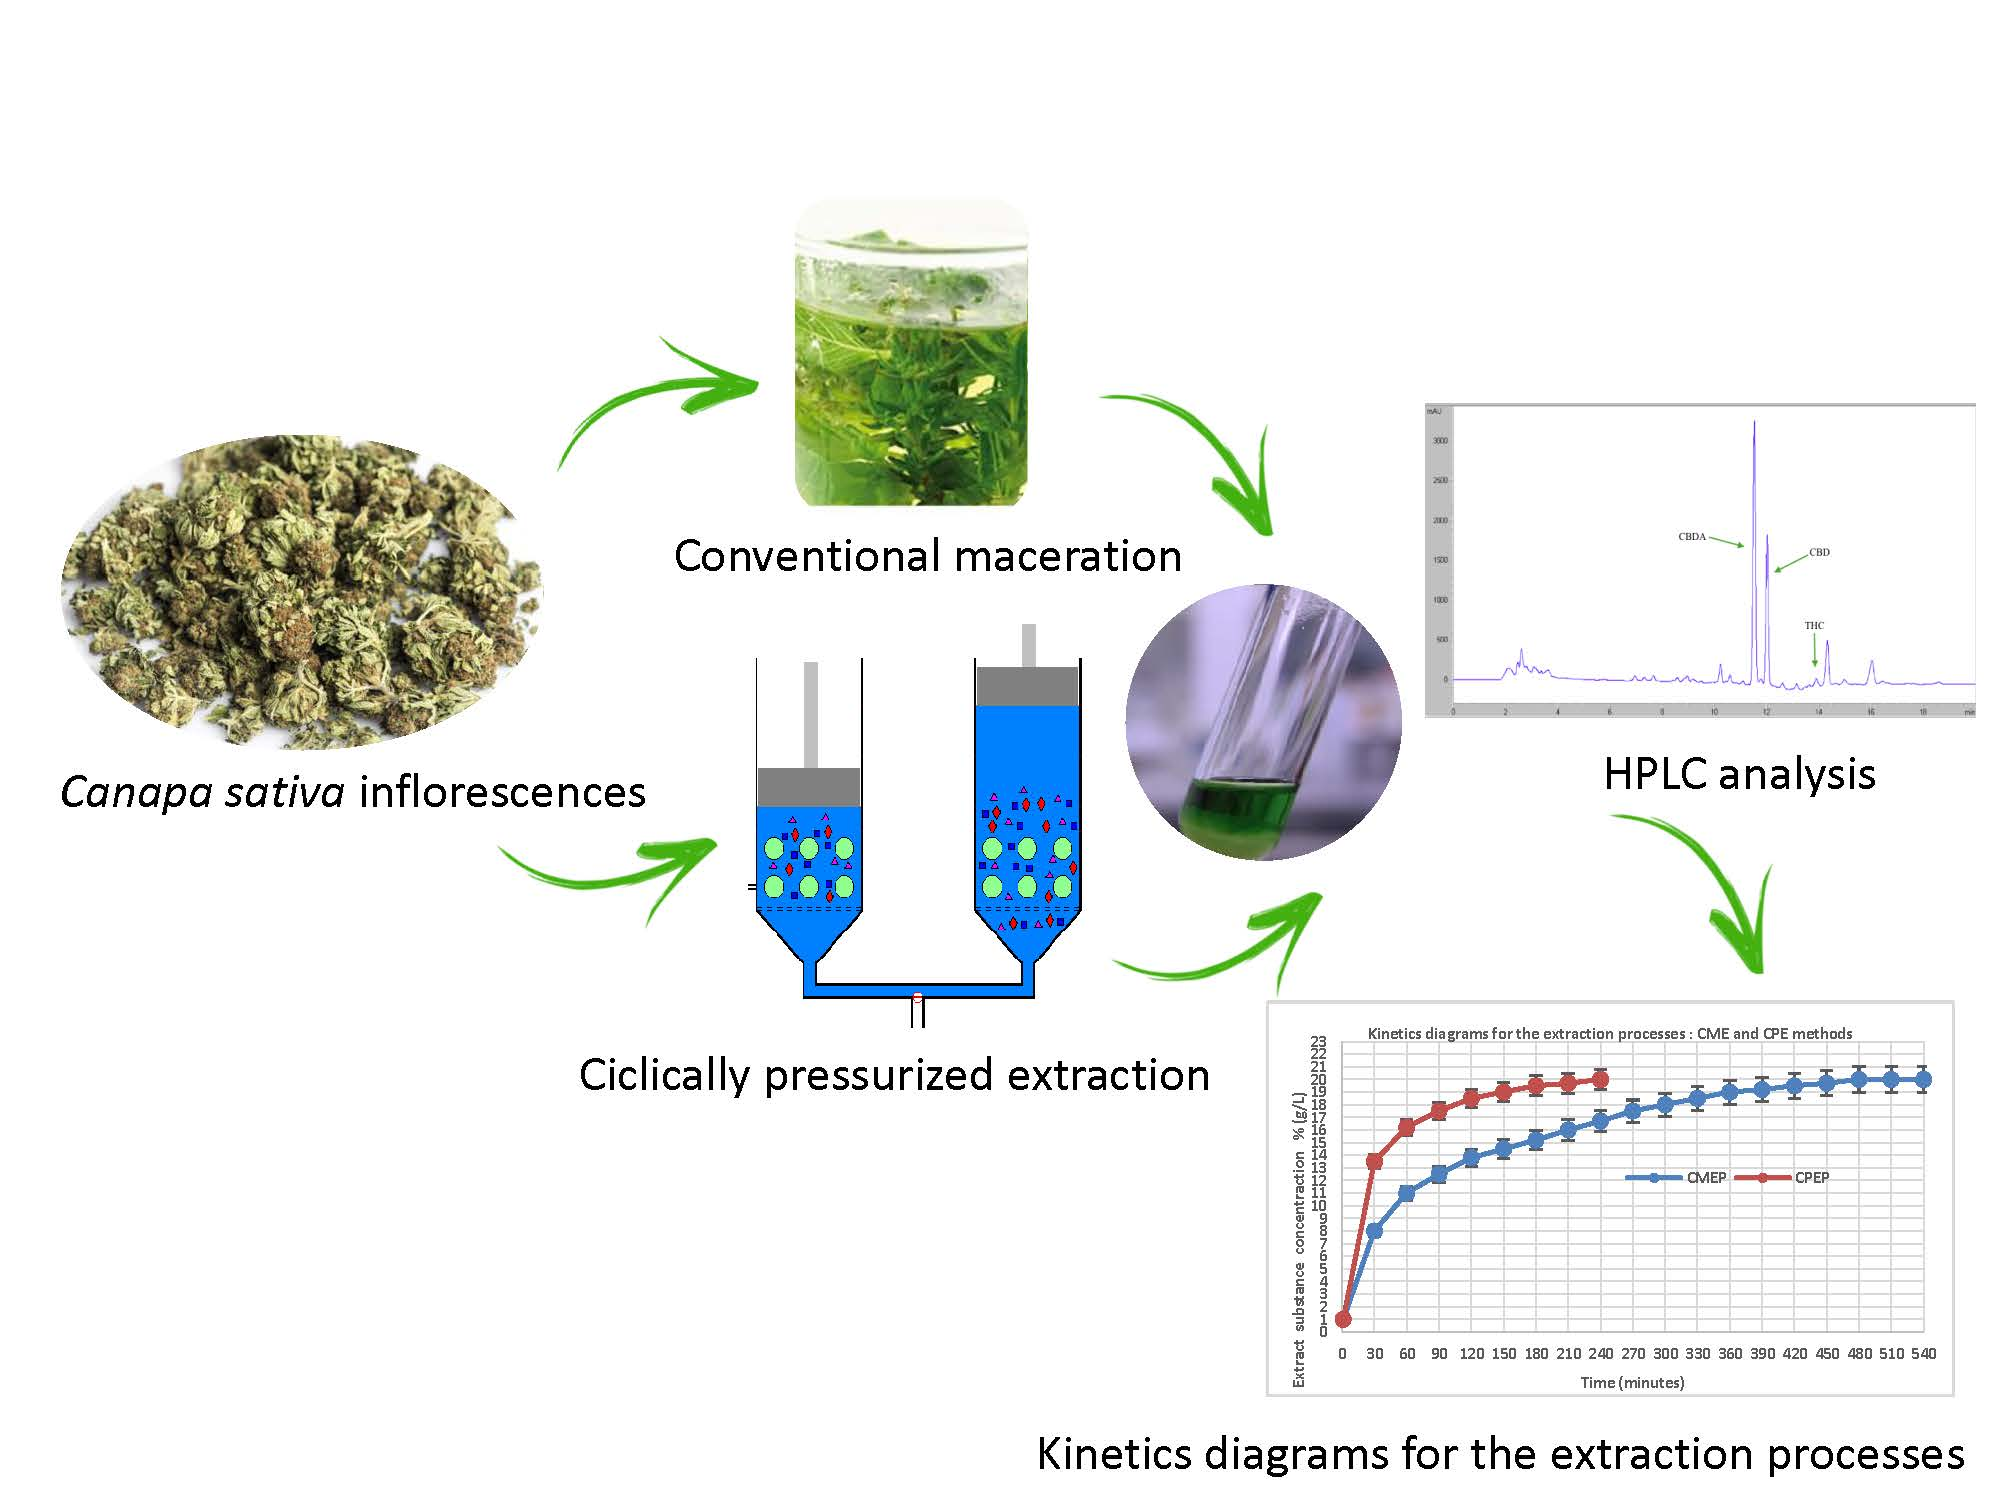 Separations Free Full Text Study Of The Kinetics Of Extraction Process For The Production Of Hemp Inflorescences Extracts By Means Of Conventional Maceration Cm And Rapid Solid Liquid Dynamic Extraction Rslde